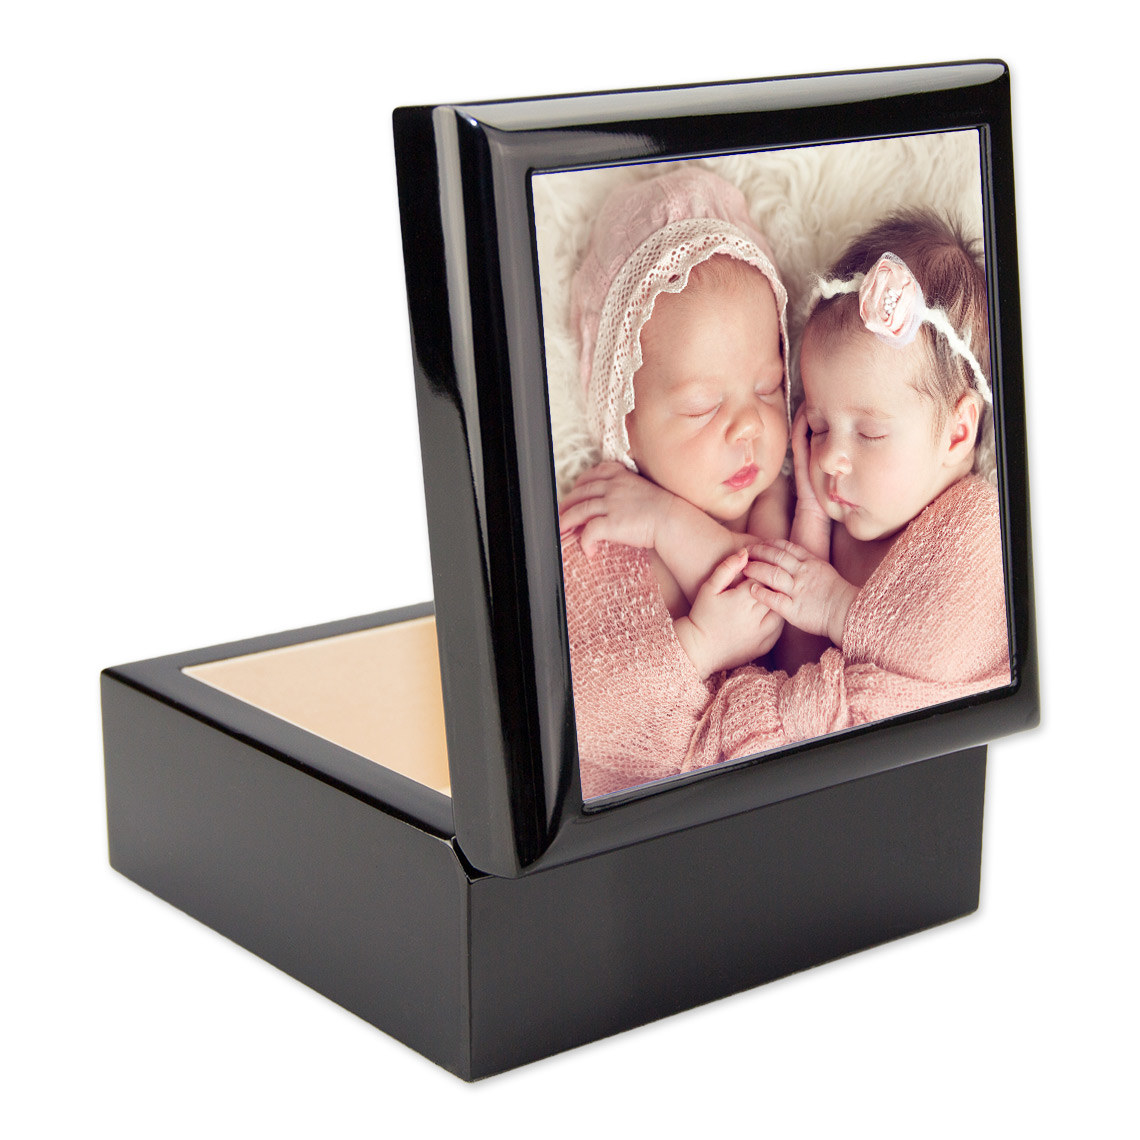 The black box with the photo tile on the lid. The box is open.